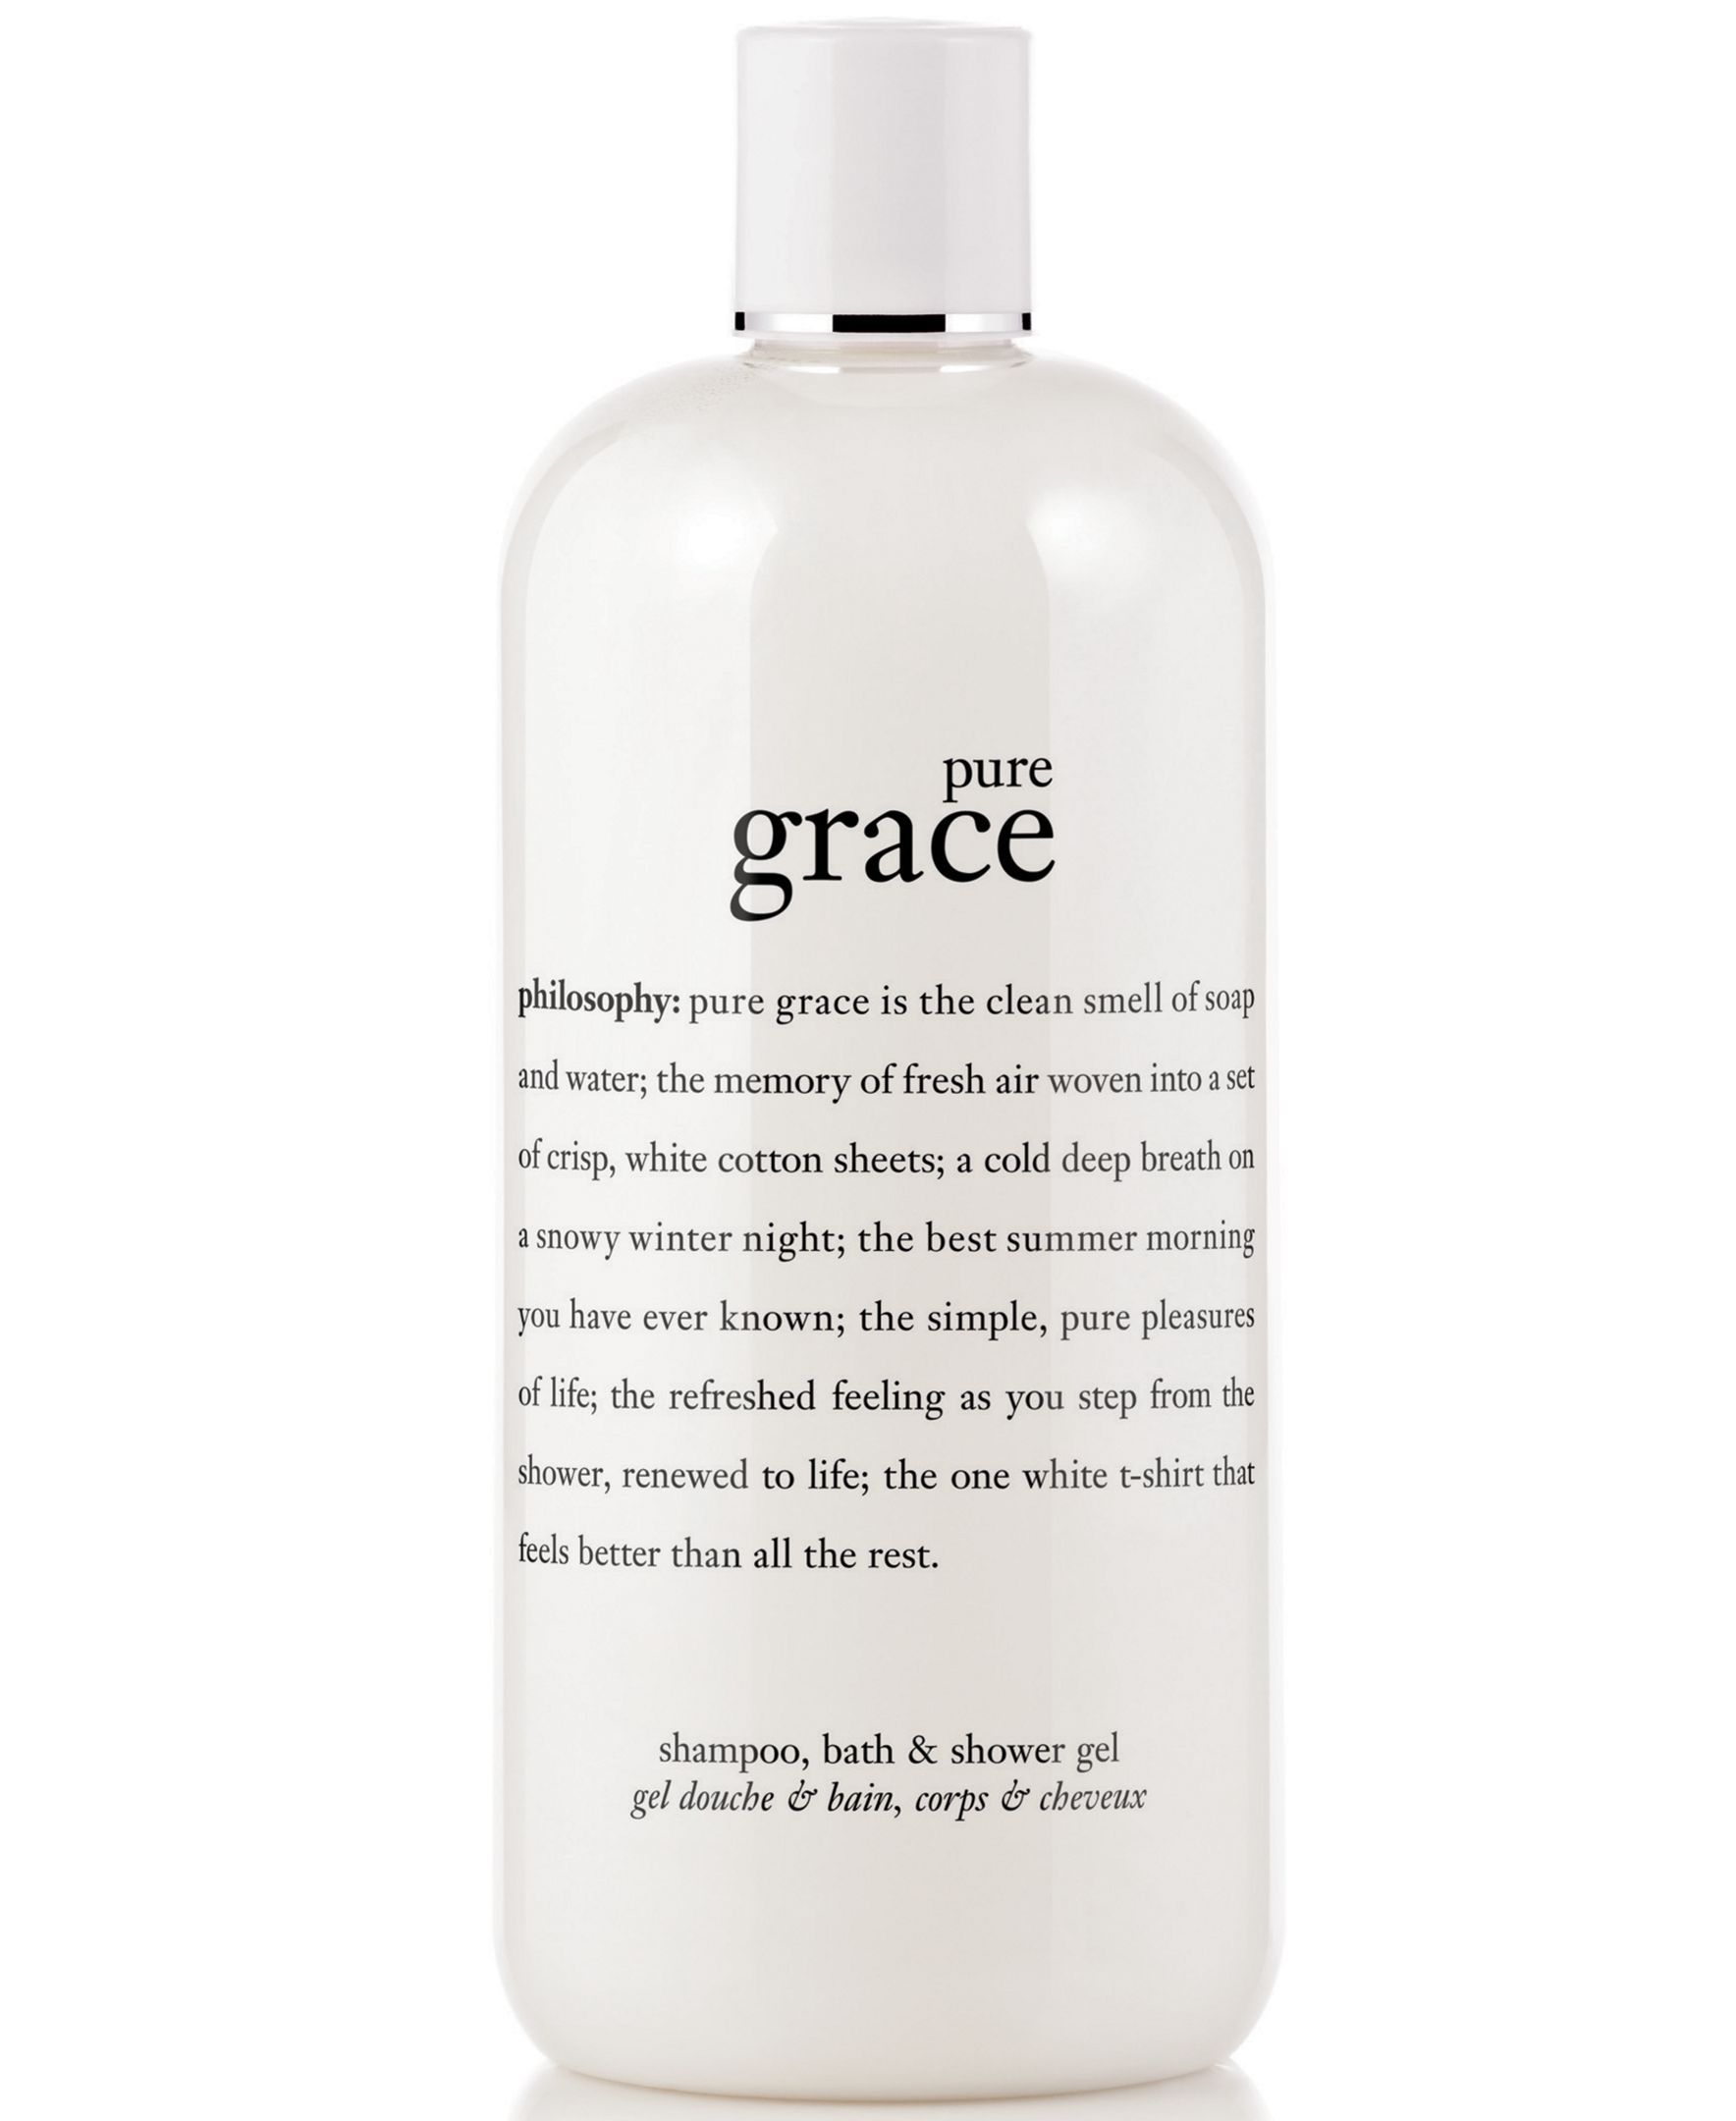 Philosophy Pure Grace 3 In 1 Shampoo Shower Gel And Bubble Bath 16 Oz Reviews Skin Care Beauty Macy S Shower Gel Pure Products Shampoo